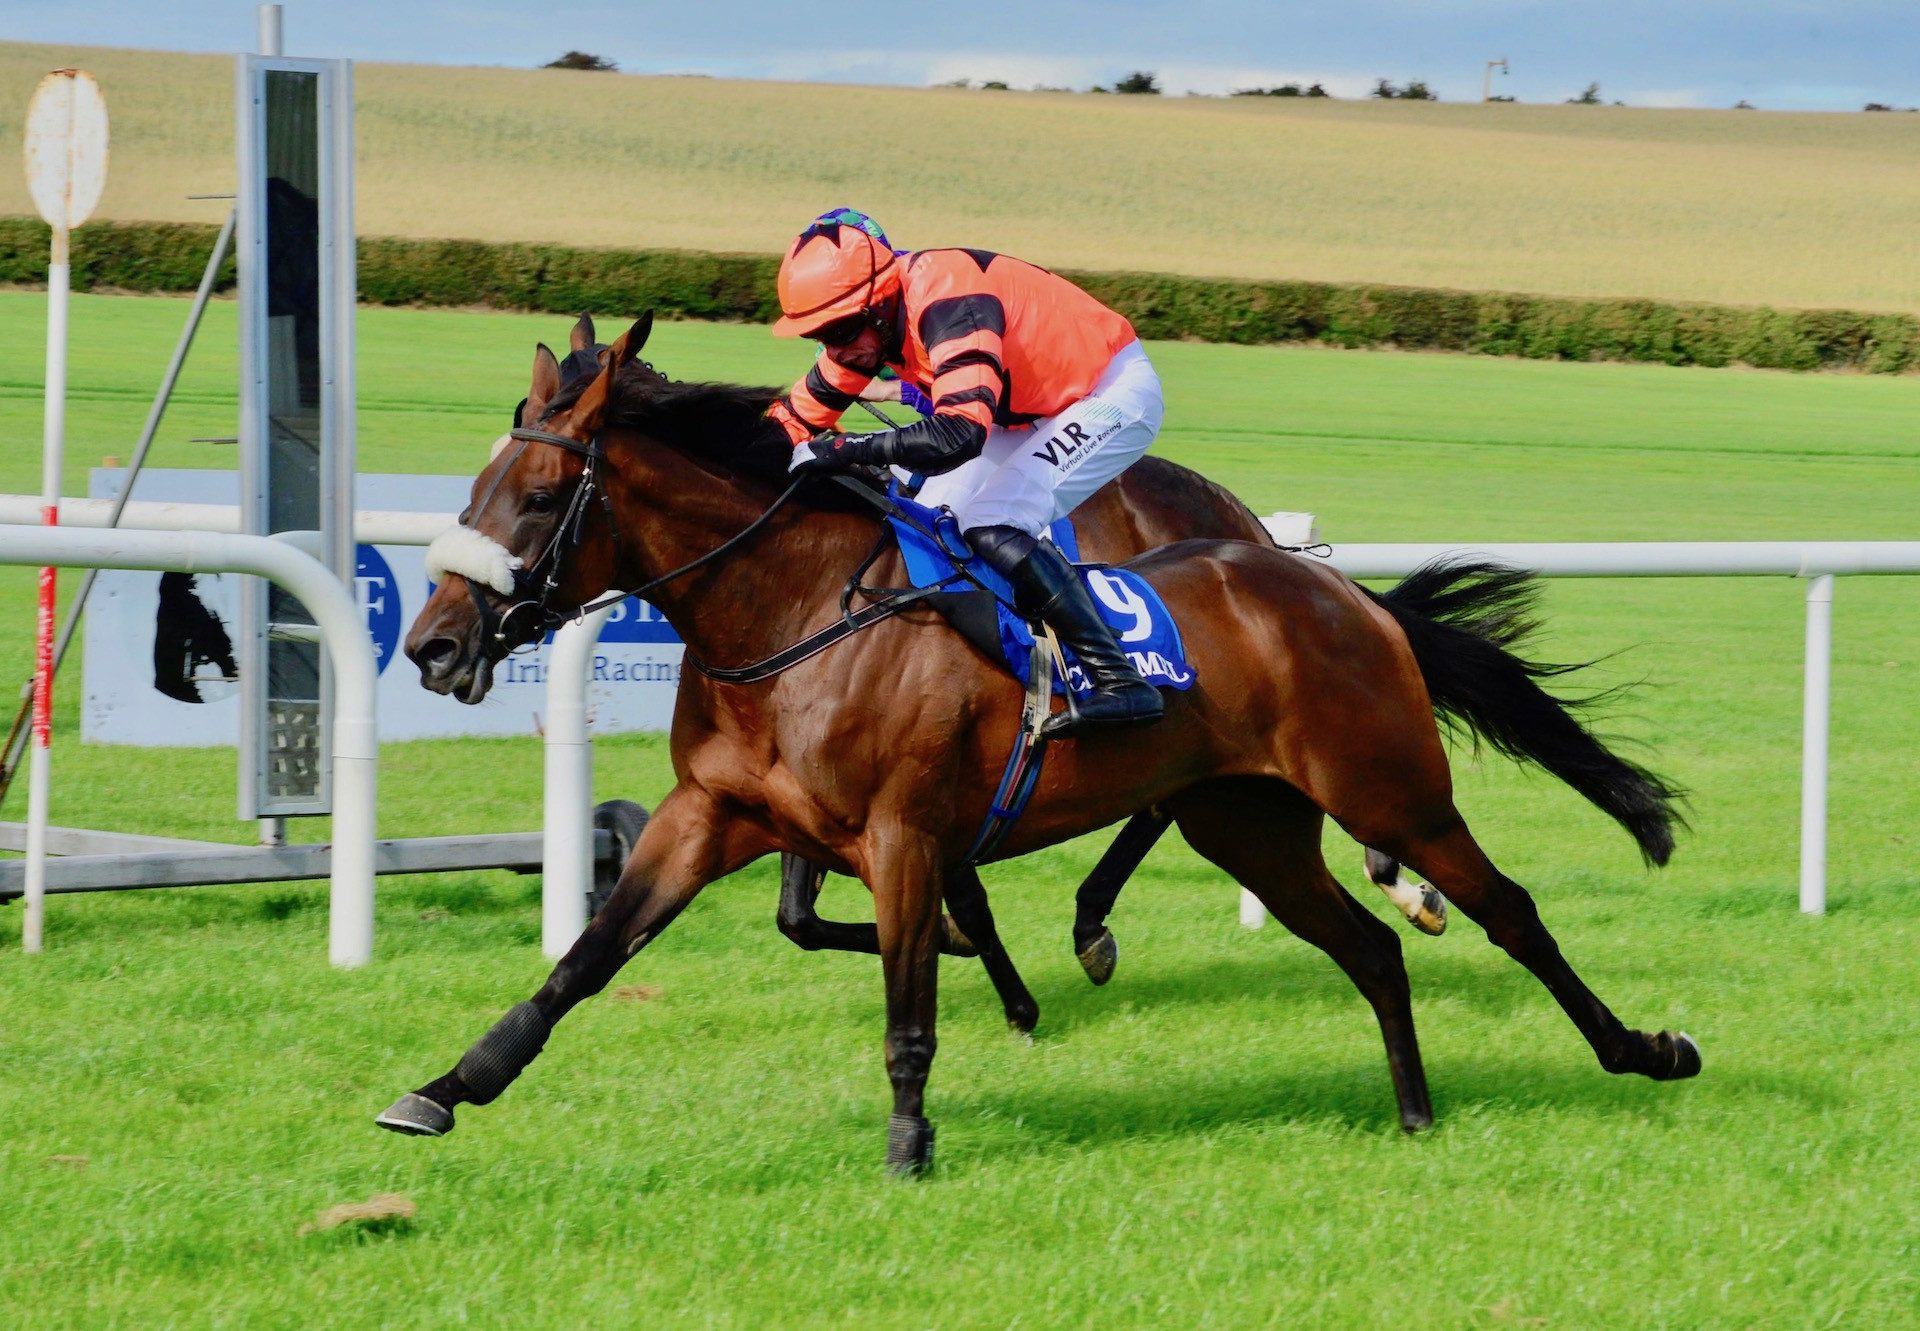 Jelona (Milan) Wins The Mares Maiden Hurdle At Clonmel